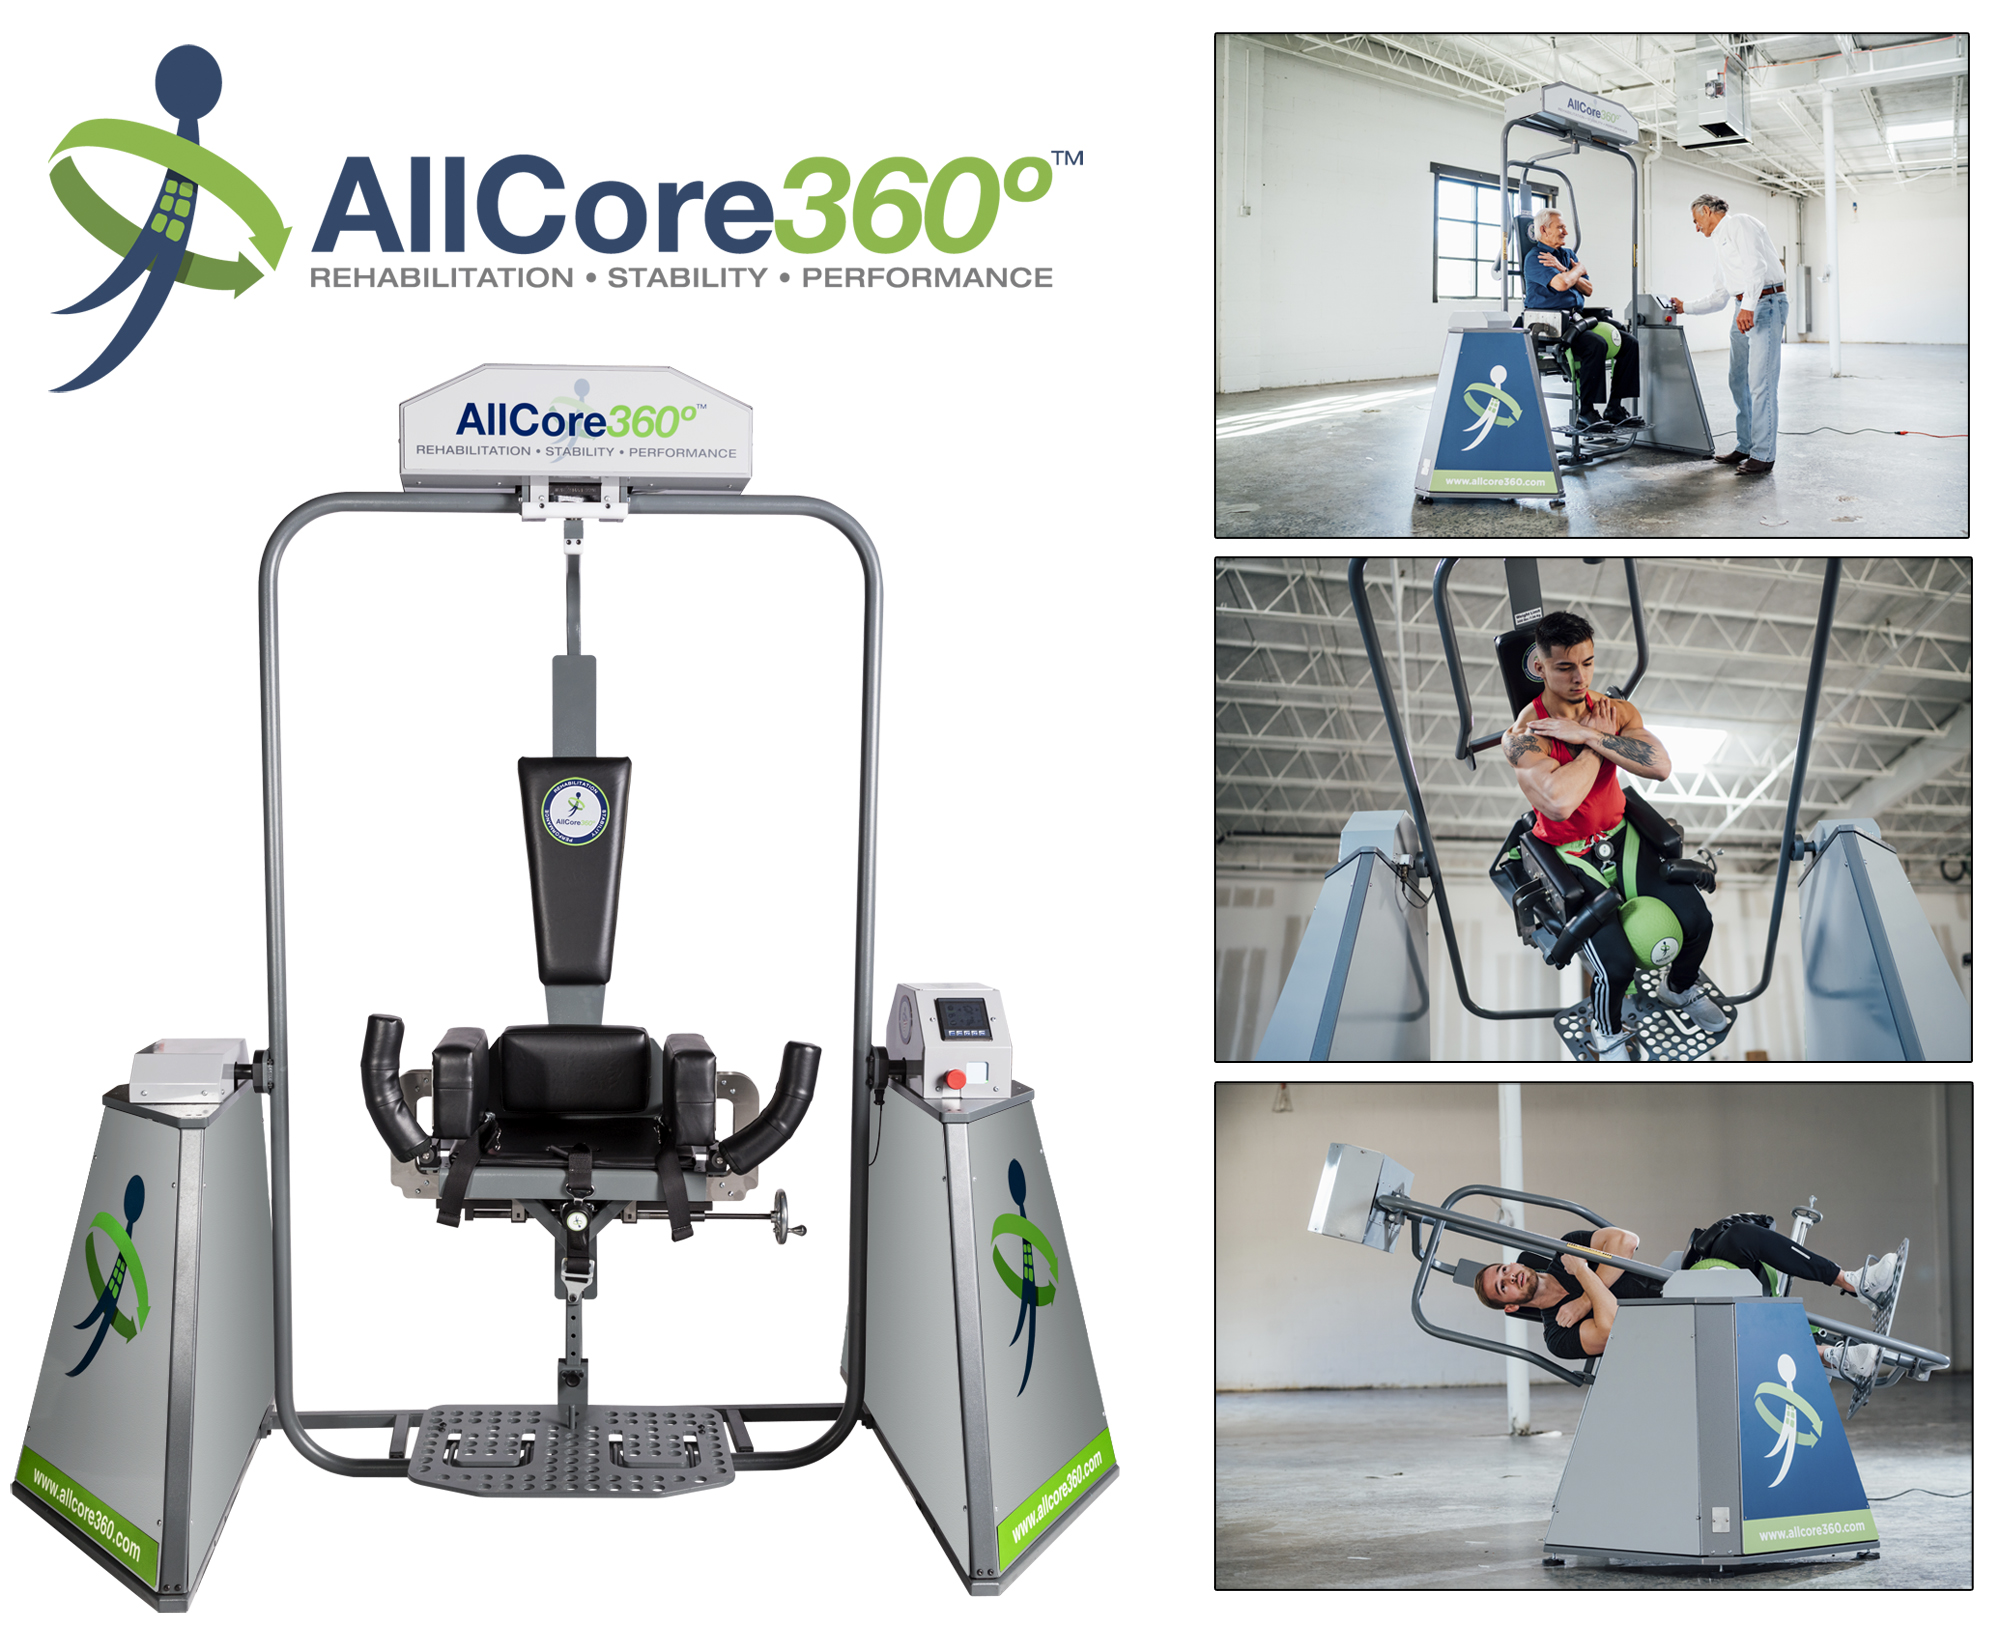 The AllCore360° Core Training System